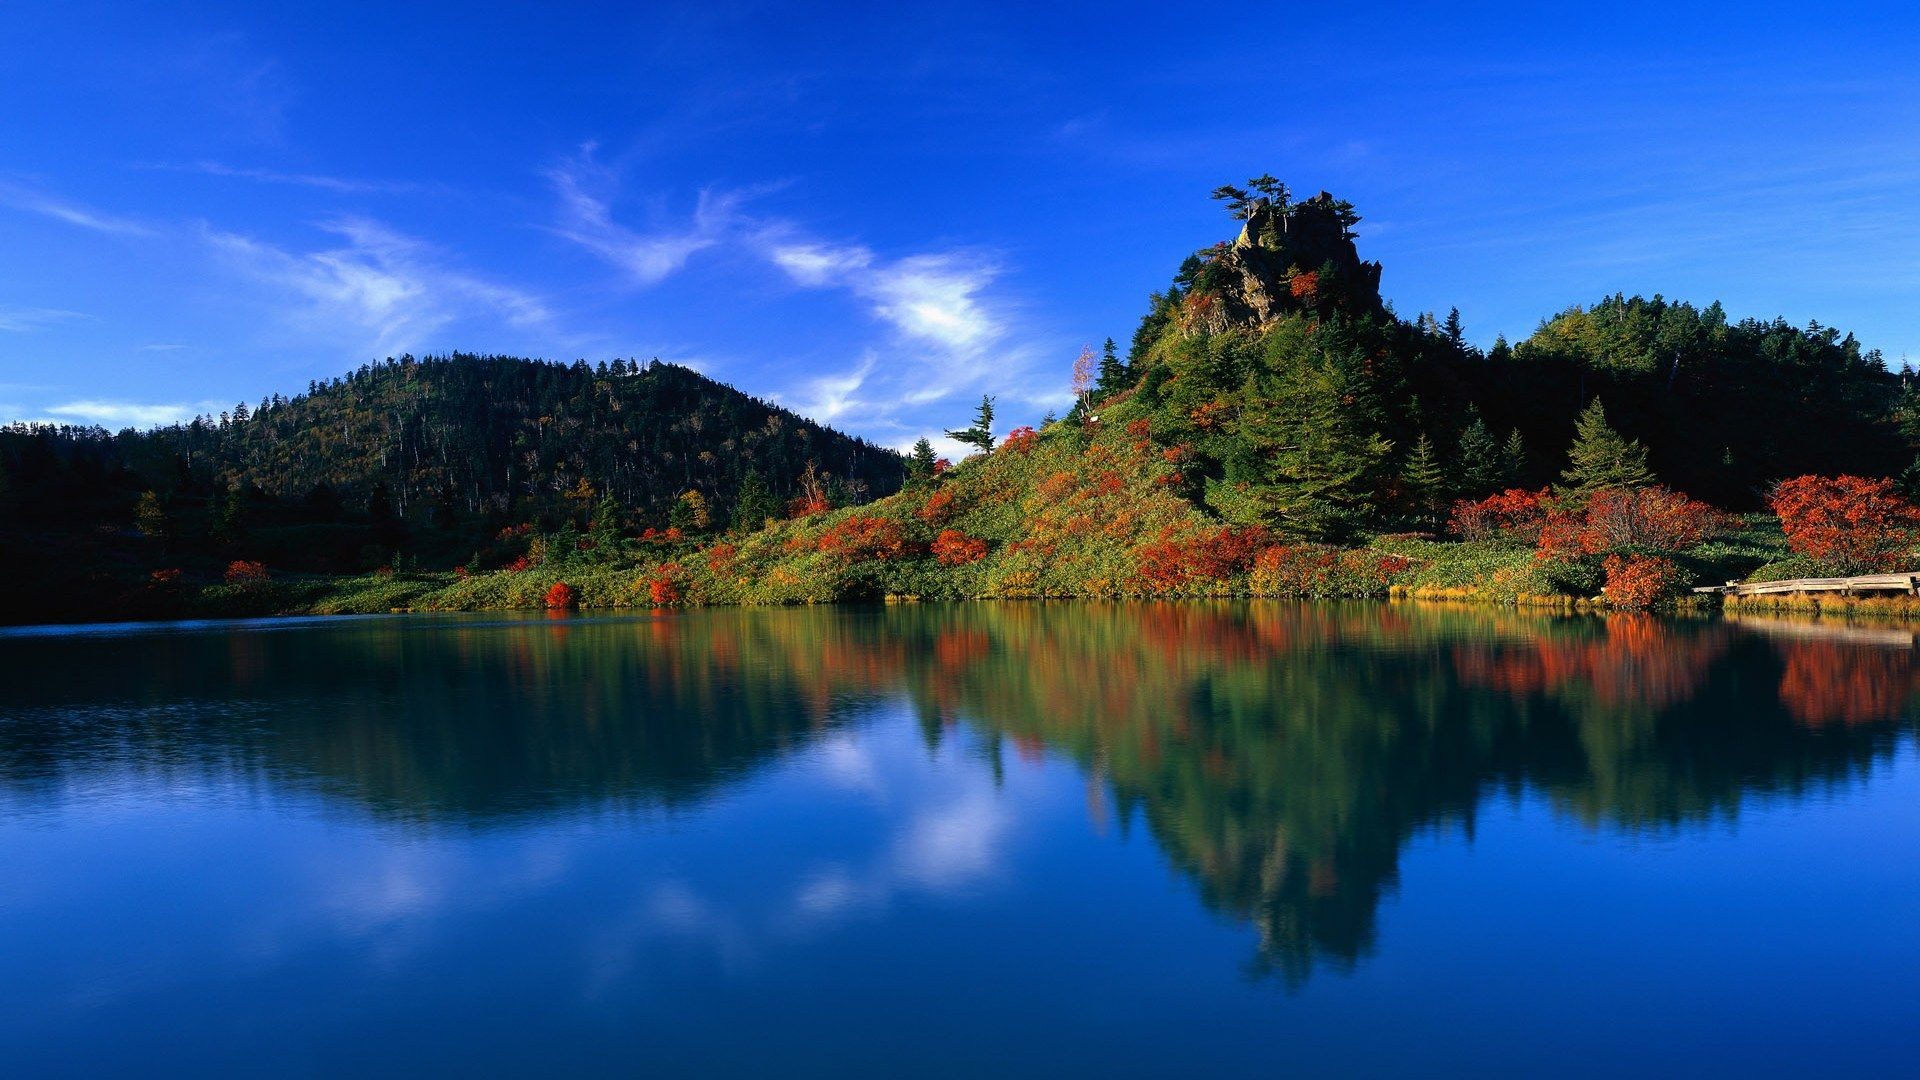 1080p Hd Wallpapers Landscape For 1080p Widescreen Lcd